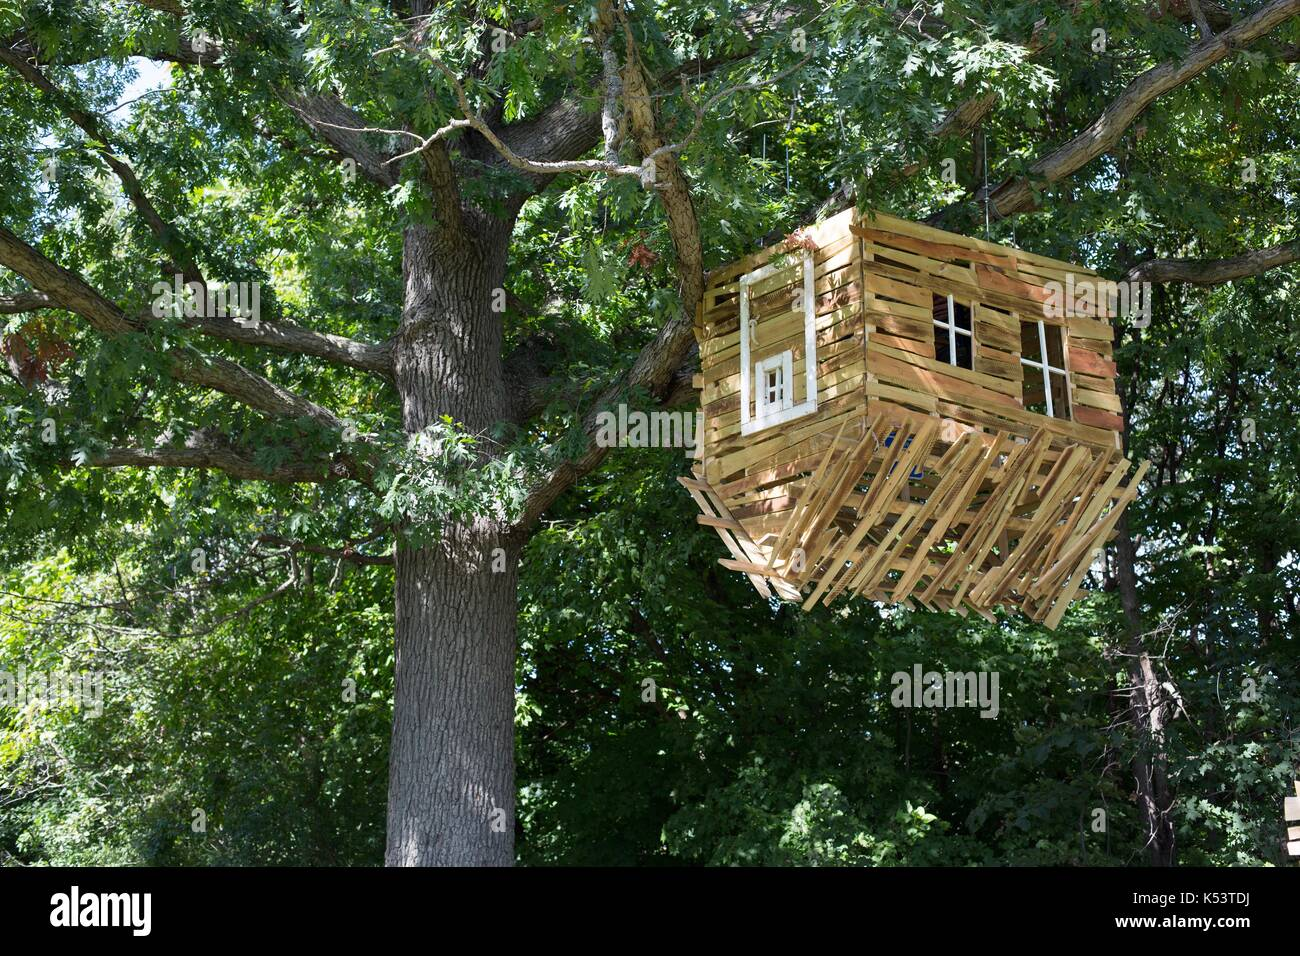 A structure titled 'Upside Down Tree House' by Bruce Lemke, on display at the Minnesota Landscape Arboretum in Chaska, Minnesota, USA. - Stock Image